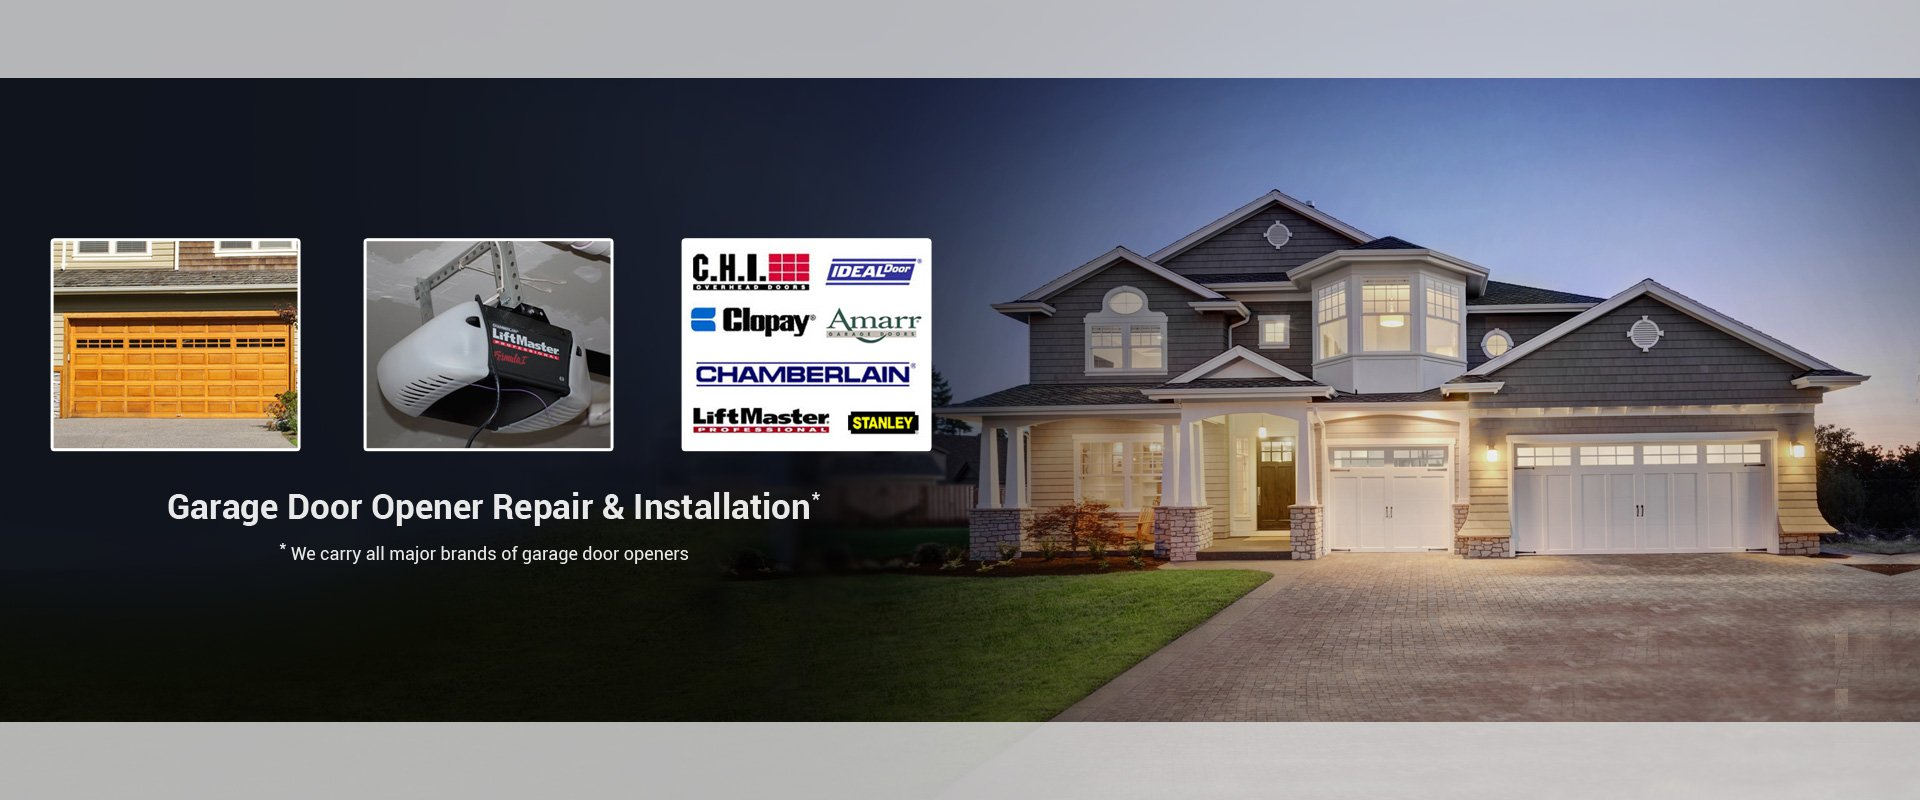 Garage Door Opener Repair And Installation Services Ventura CA